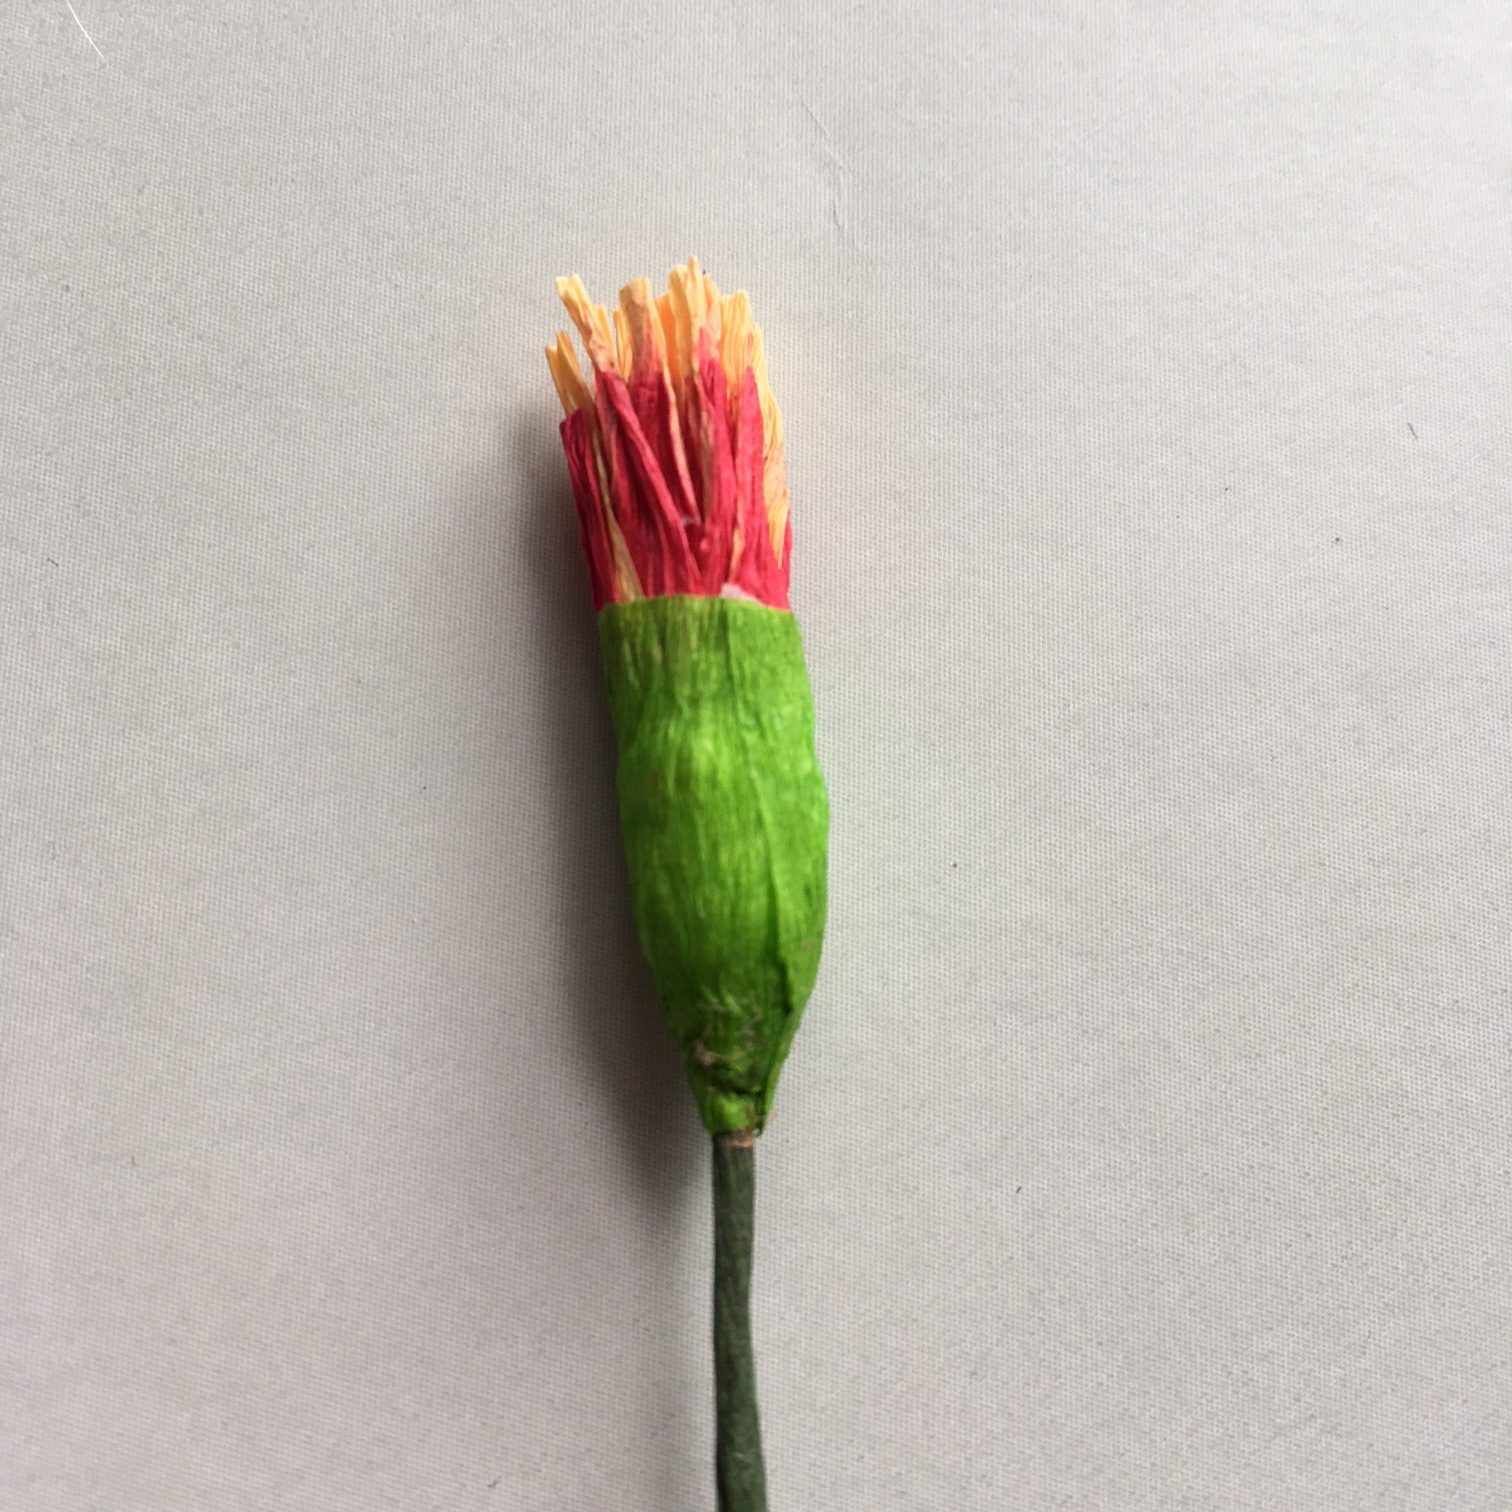 making the stamens of the crepe paper Poinsettia